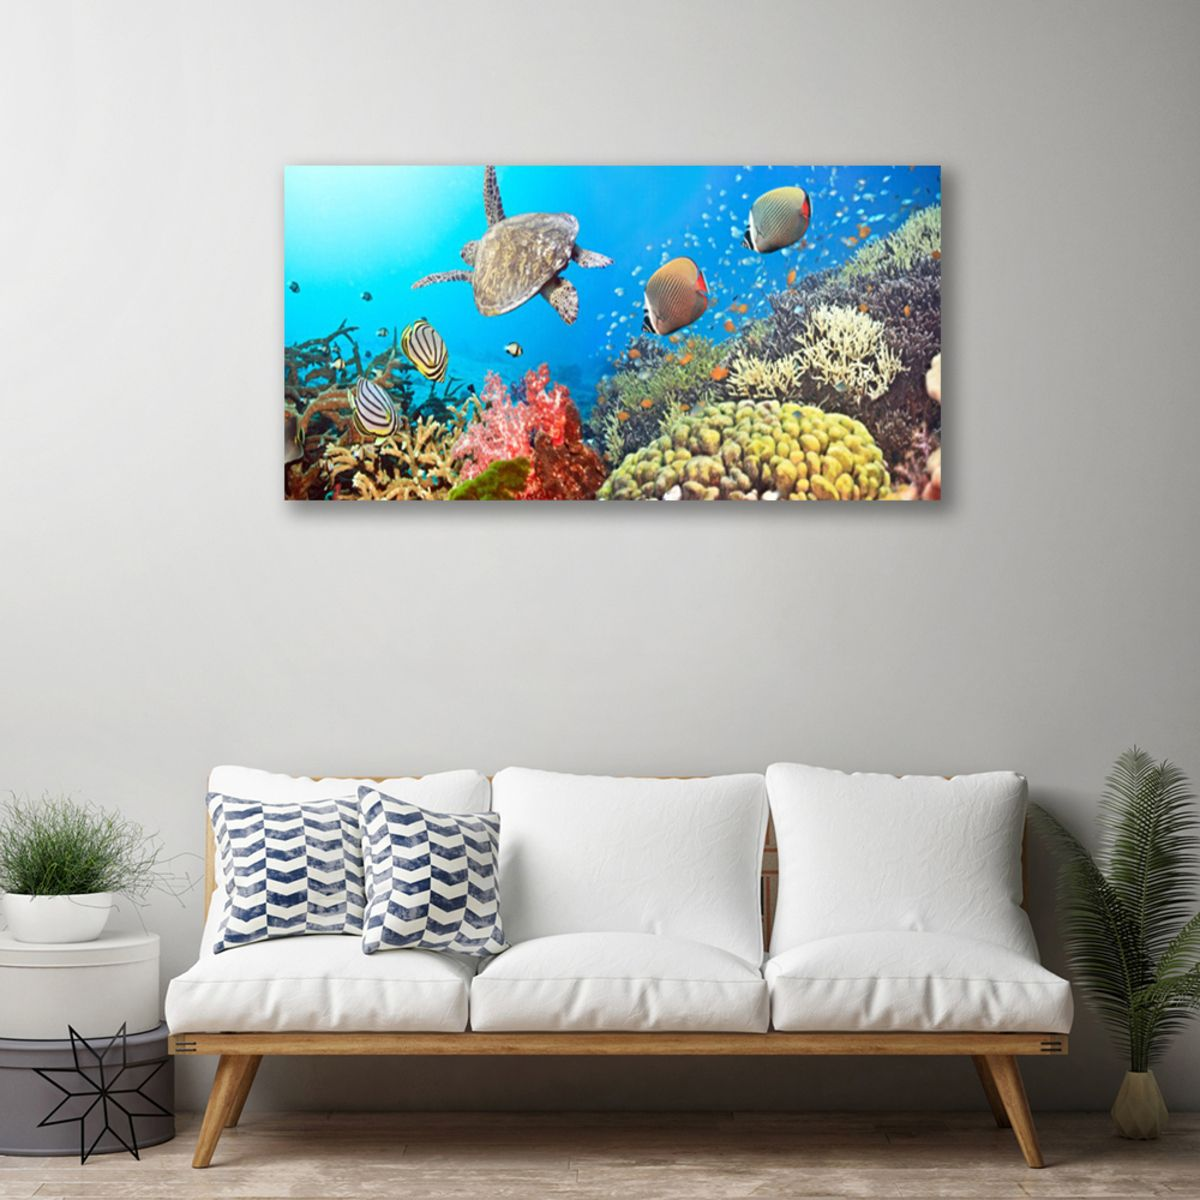 #canvas #canvasart #canvasprint #walldecor #walldesign #walls #murals #coralreef #underwater #summer #summerdecor #livingroomideas